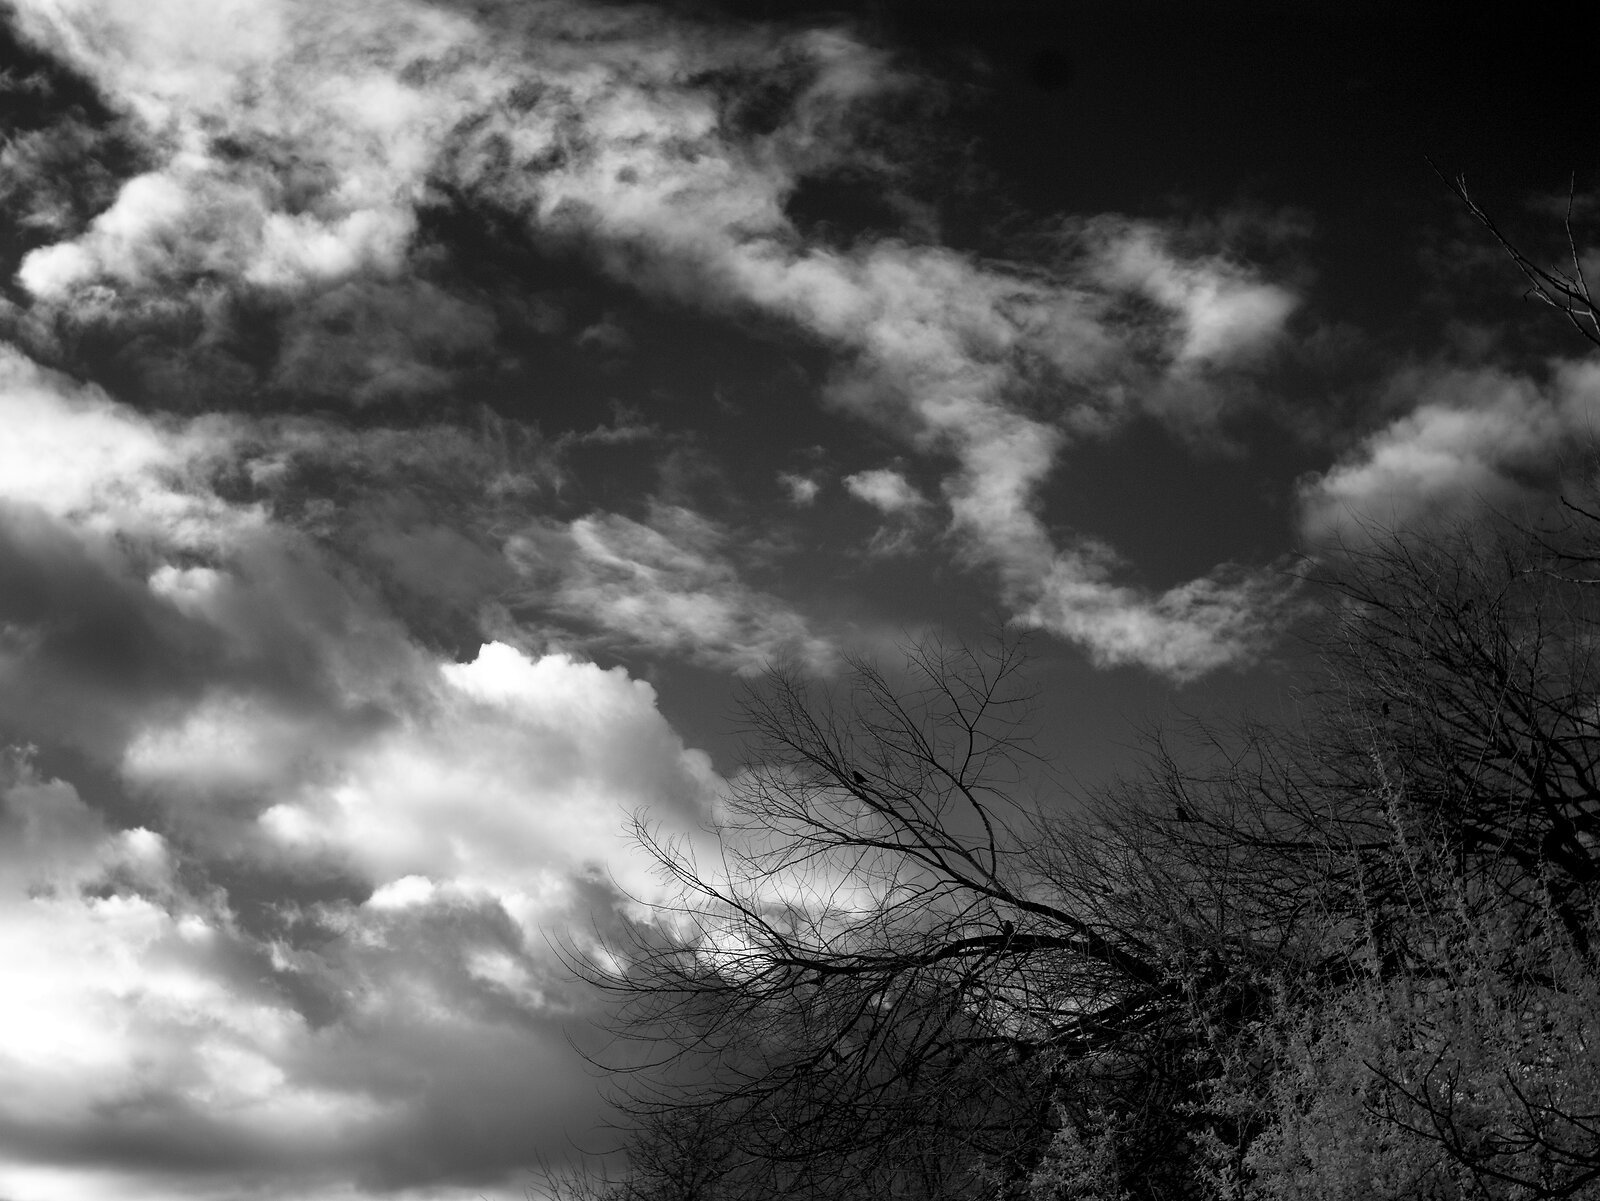 GX1_Jan25_21_Clouds&Trees(IR).jpg